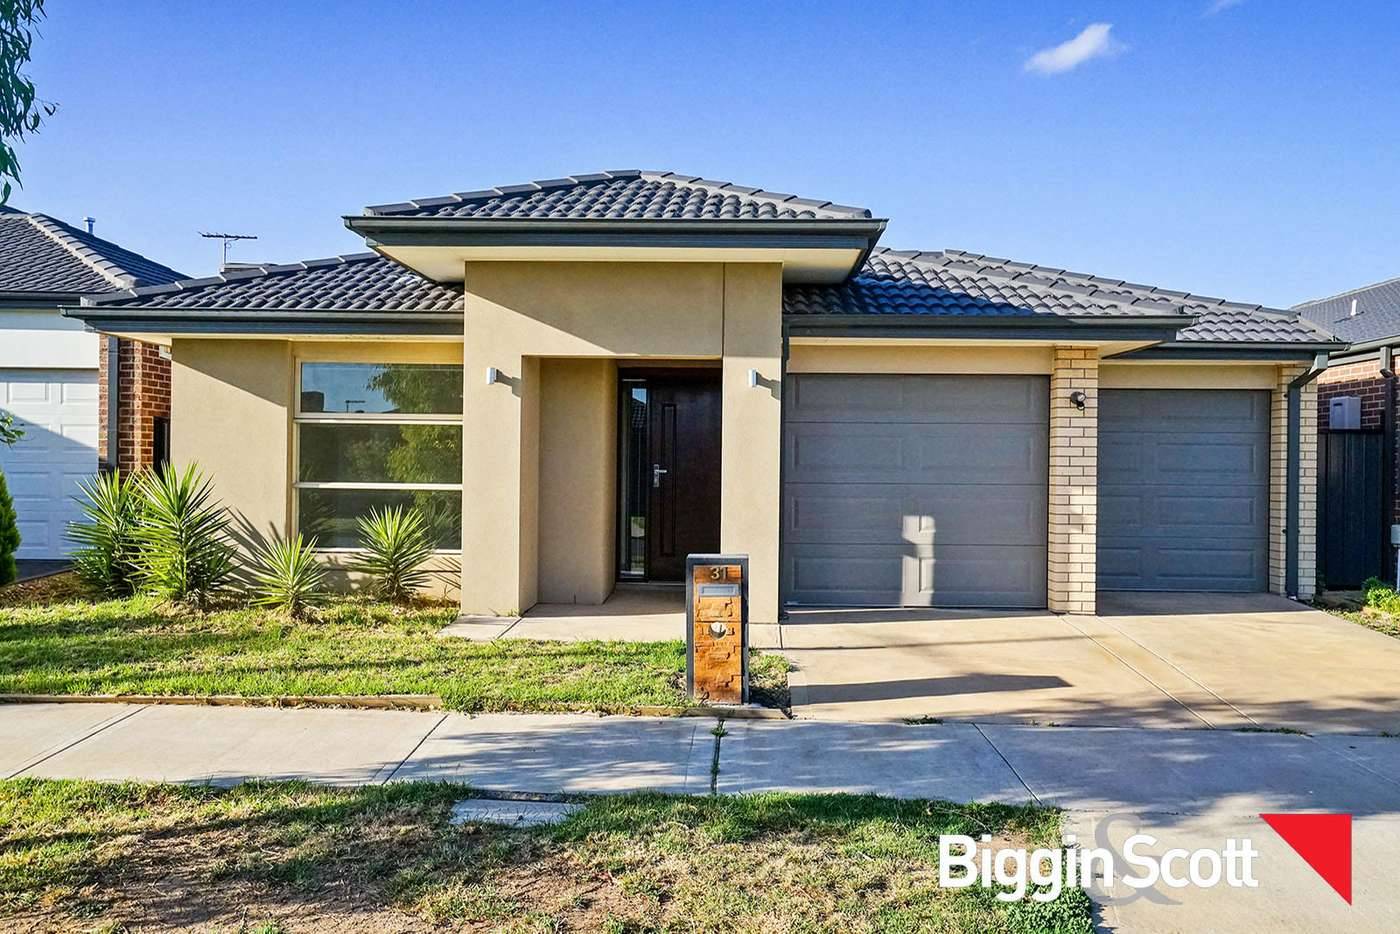 Main view of Homely house listing, 31 Omaroo Street, Truganina VIC 3029